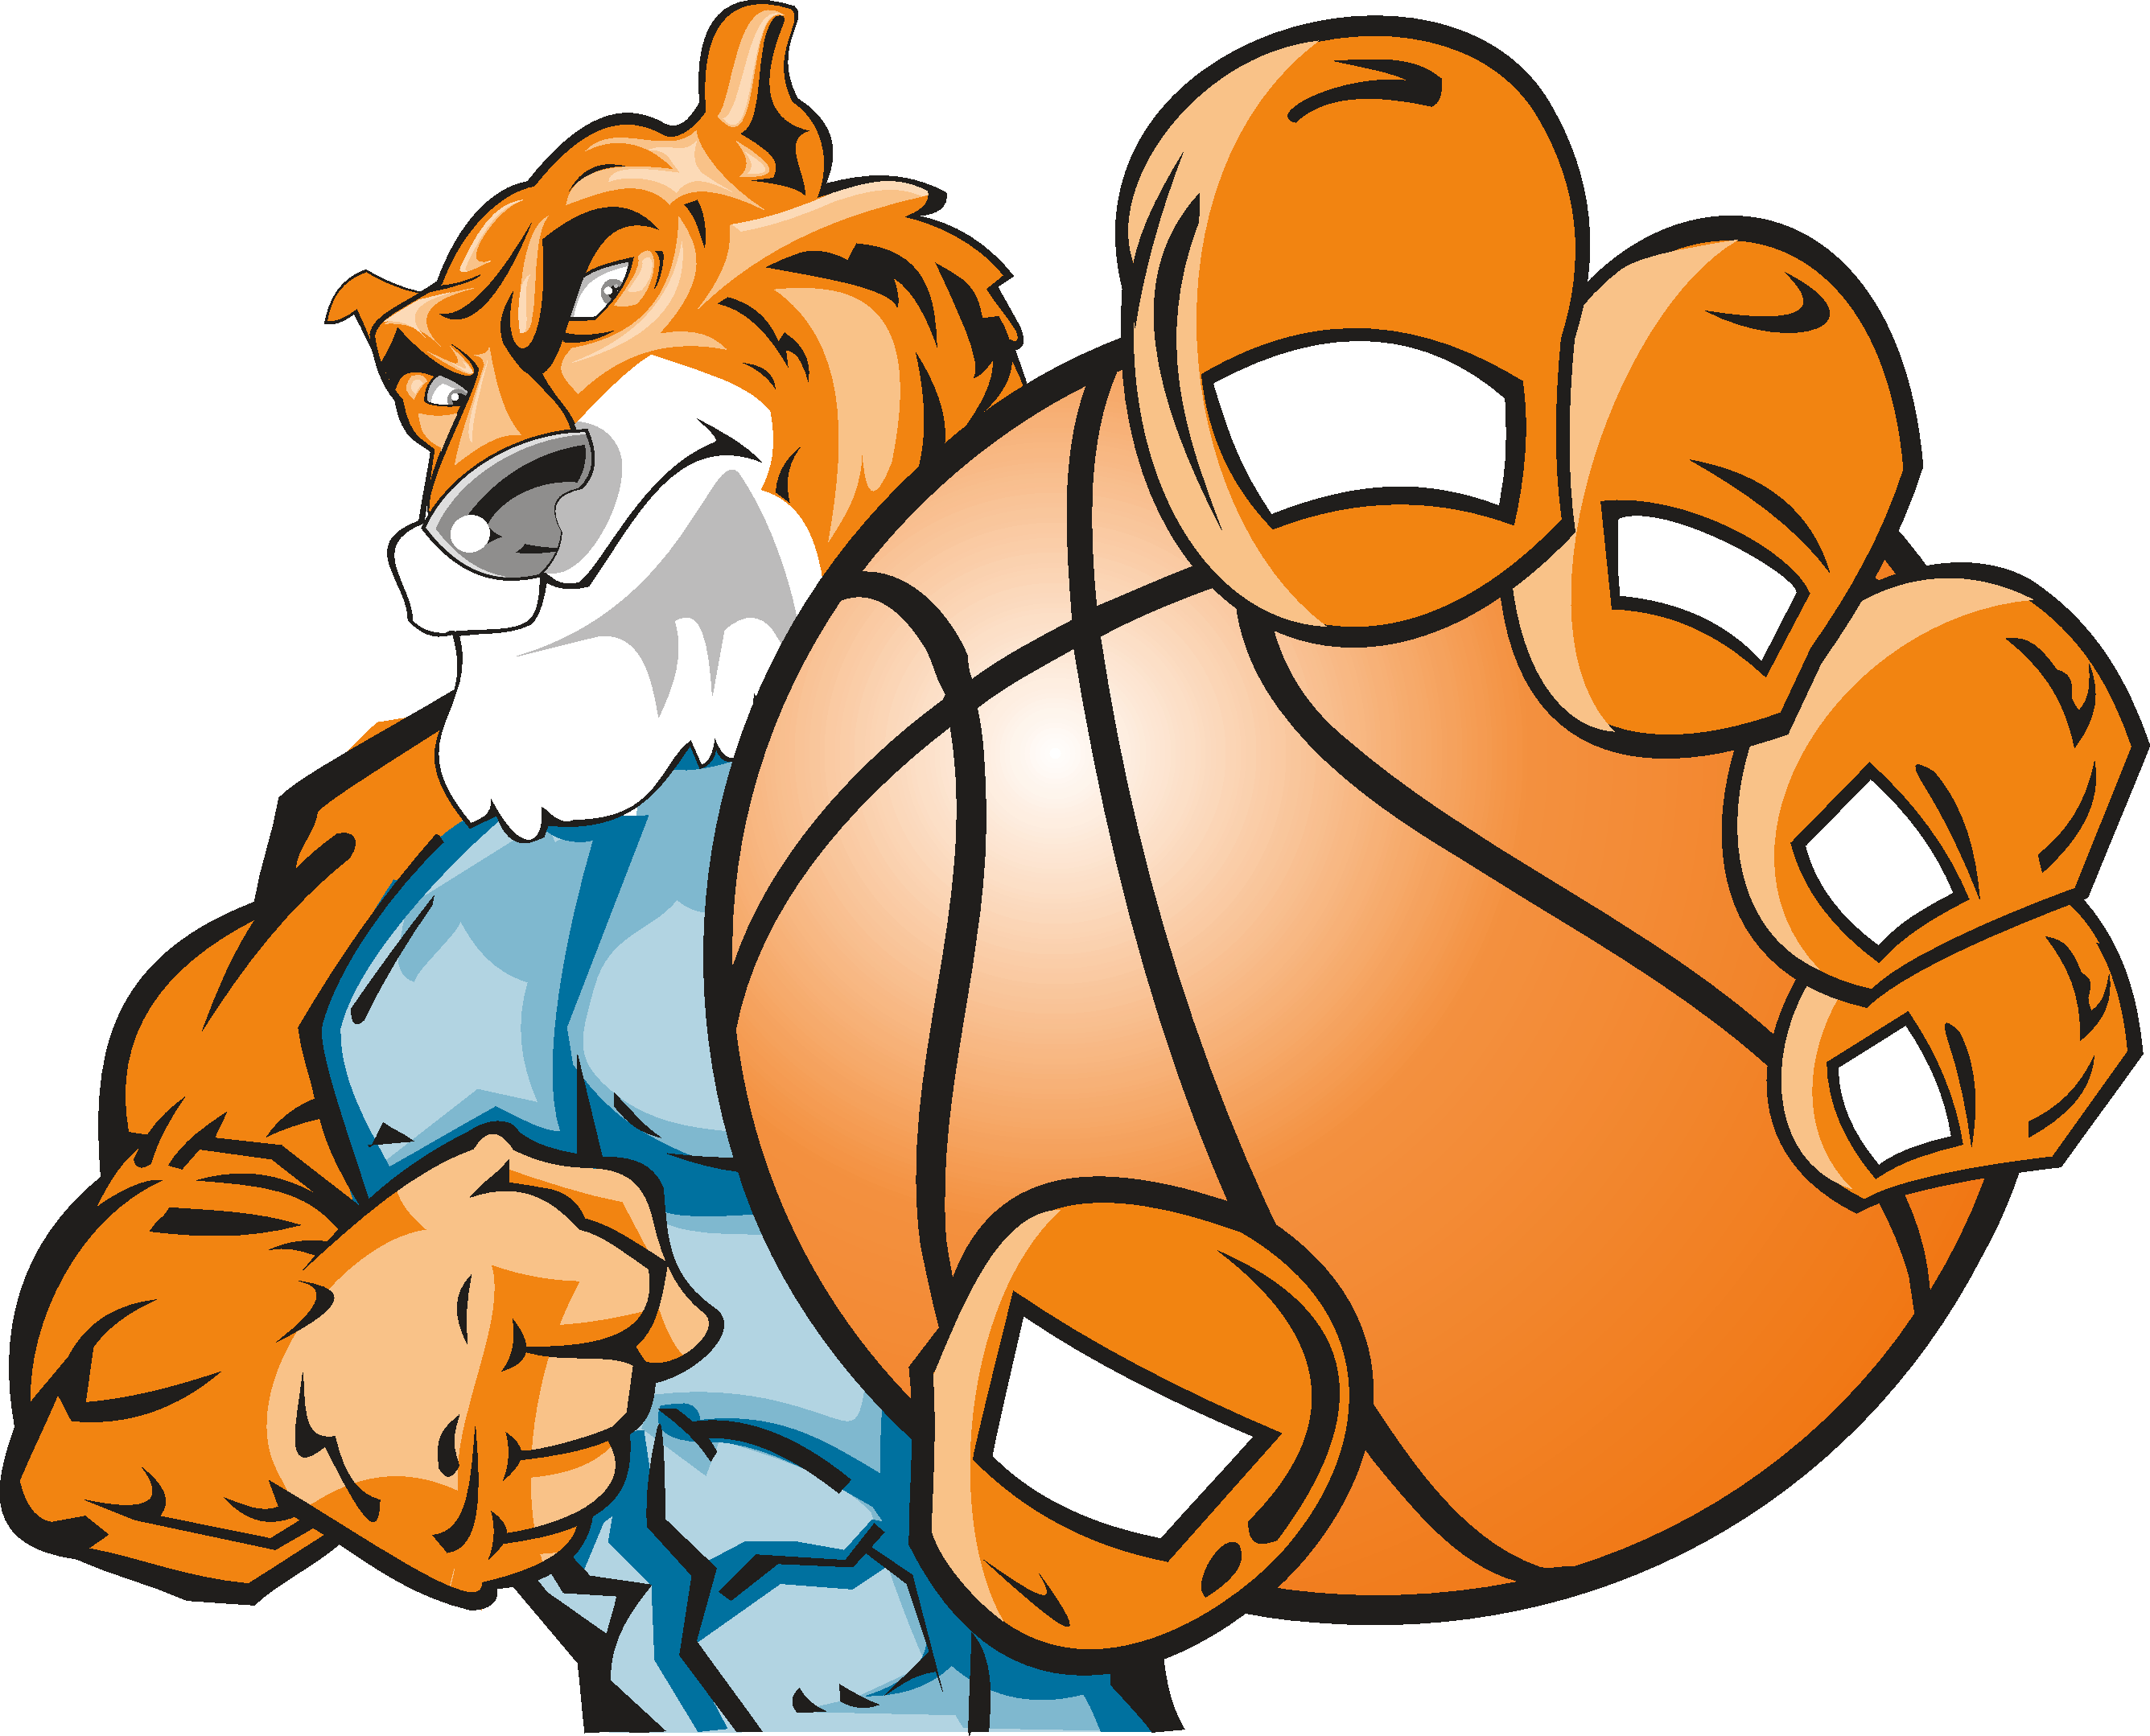 best mascot and. Dogs clipart basketball